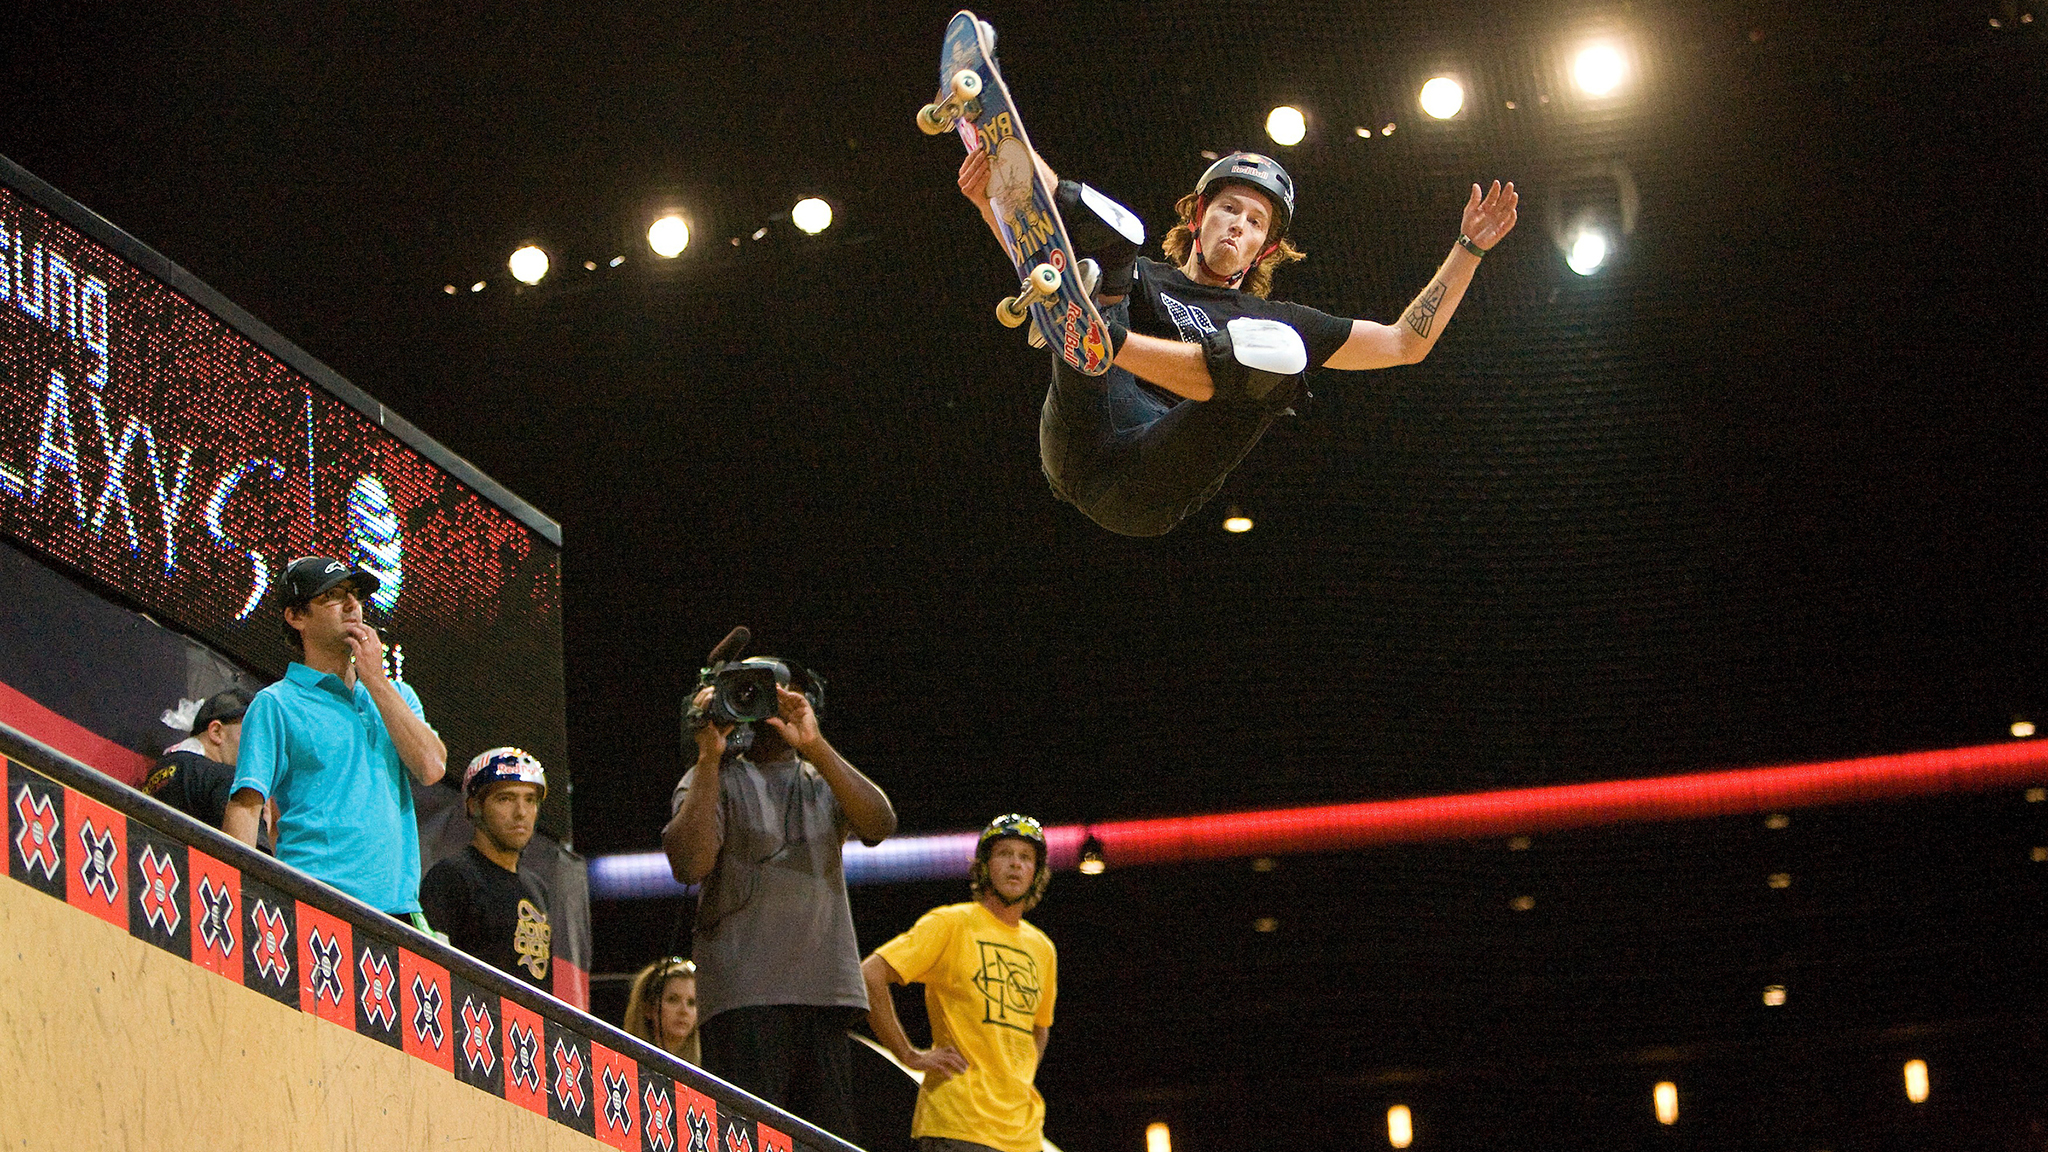 In 2011, Shaun White took gold in Skateboard Vert at X Games 17. In 2020, White is eyeing up an invite to skate park at the Olympics.